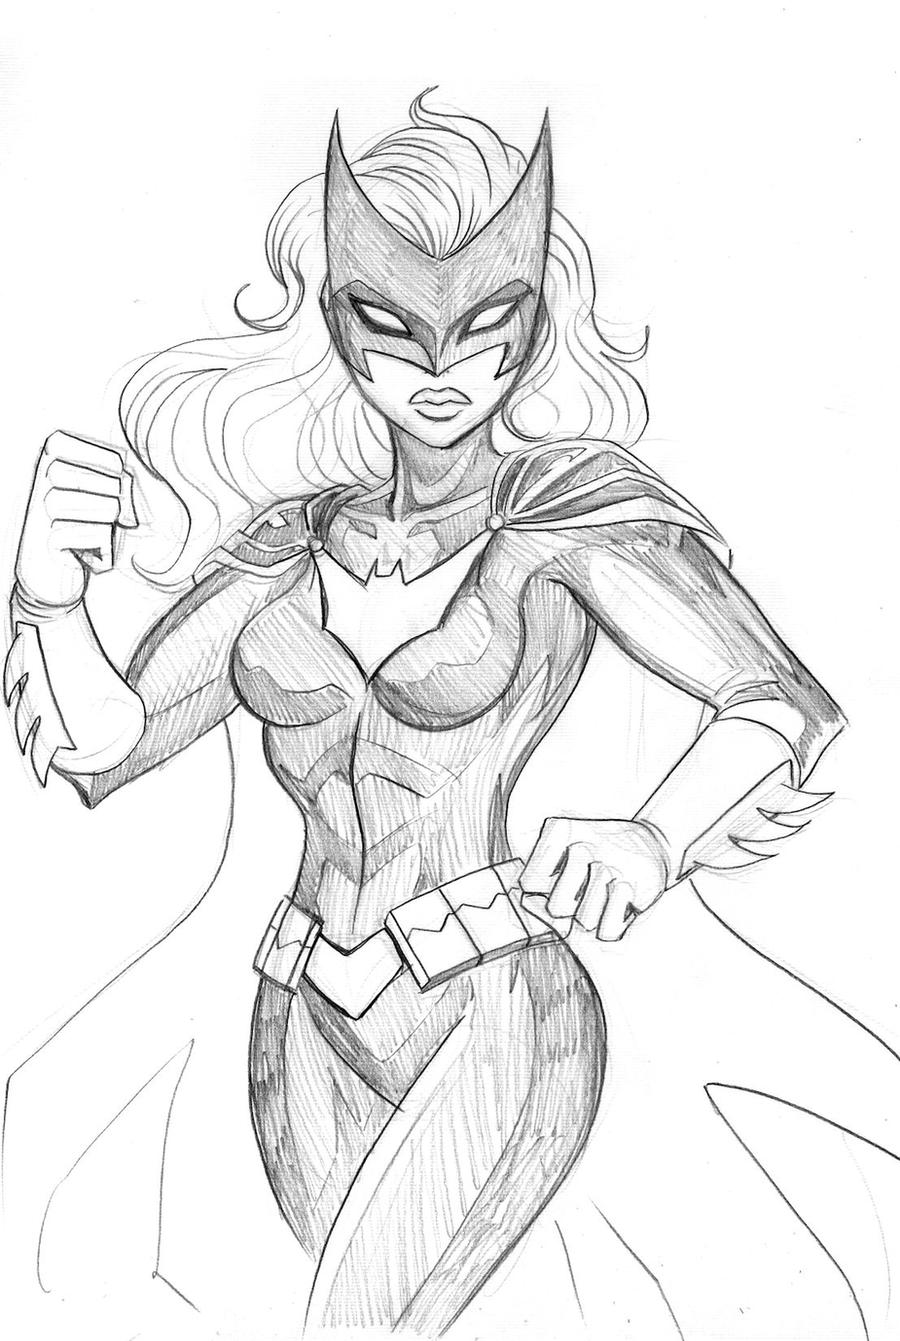 Batwoman sketch by LucianoVecchio